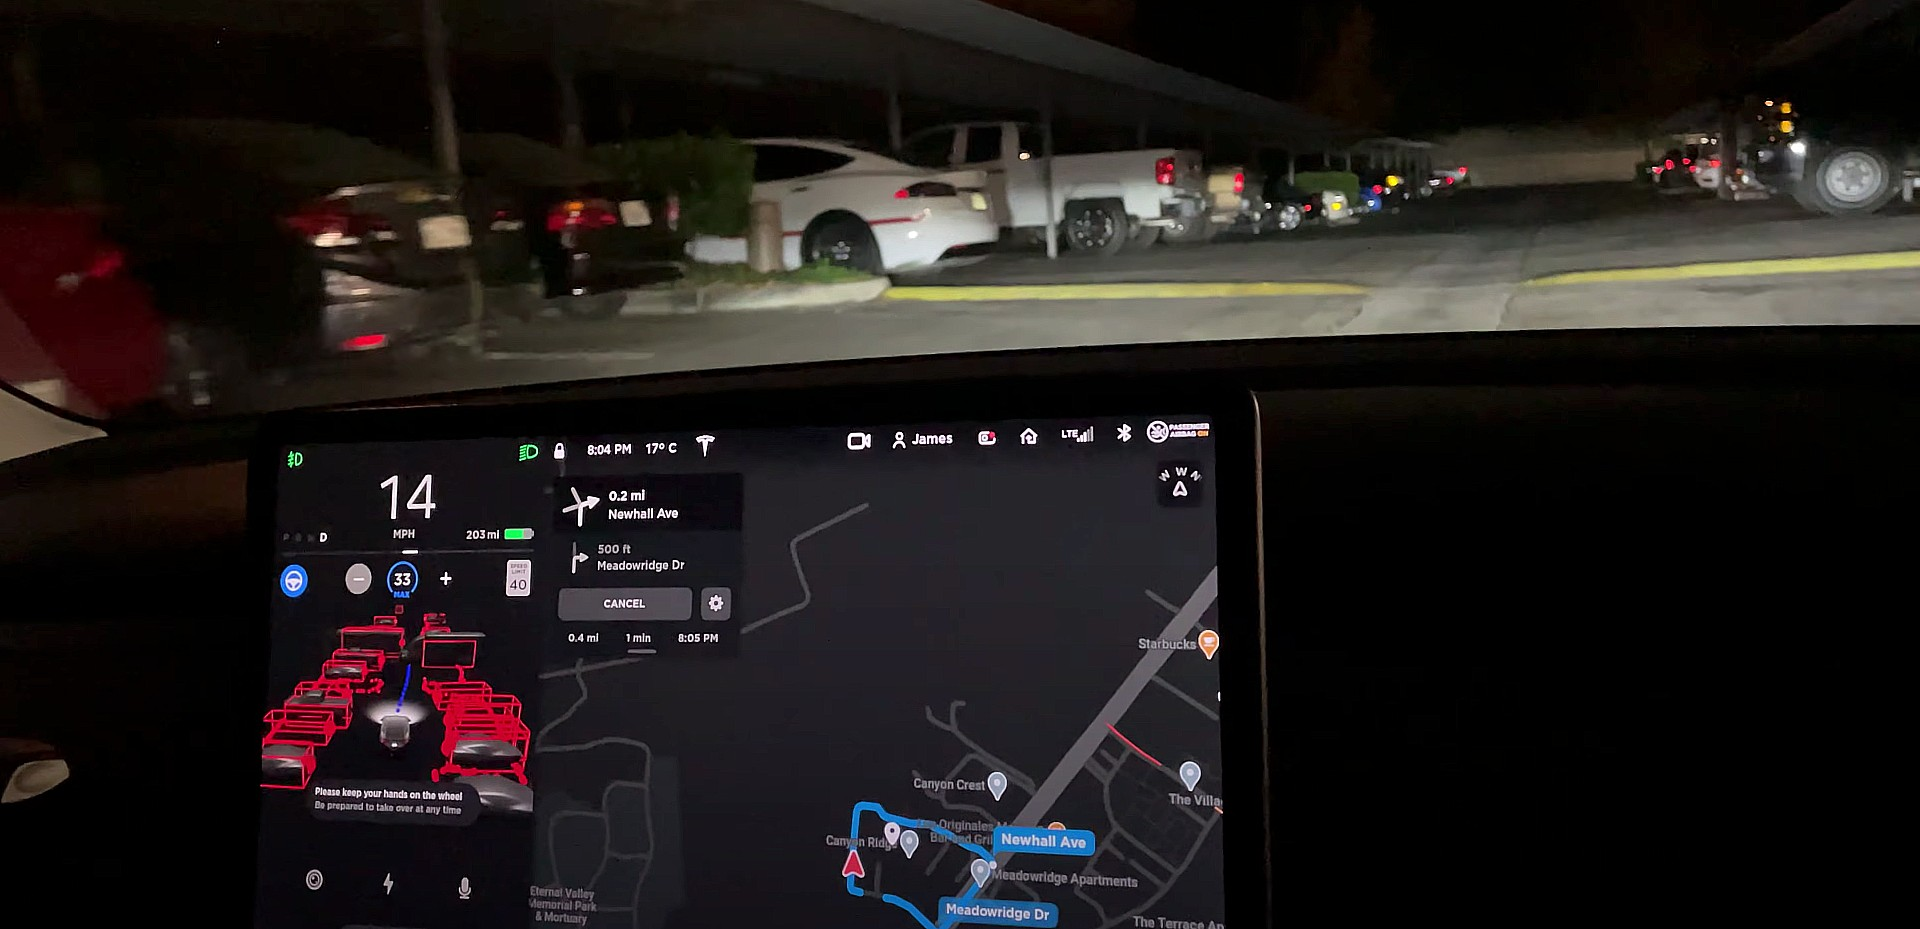 tesla-fsd-beta-video-speed-bumps-parking-lot